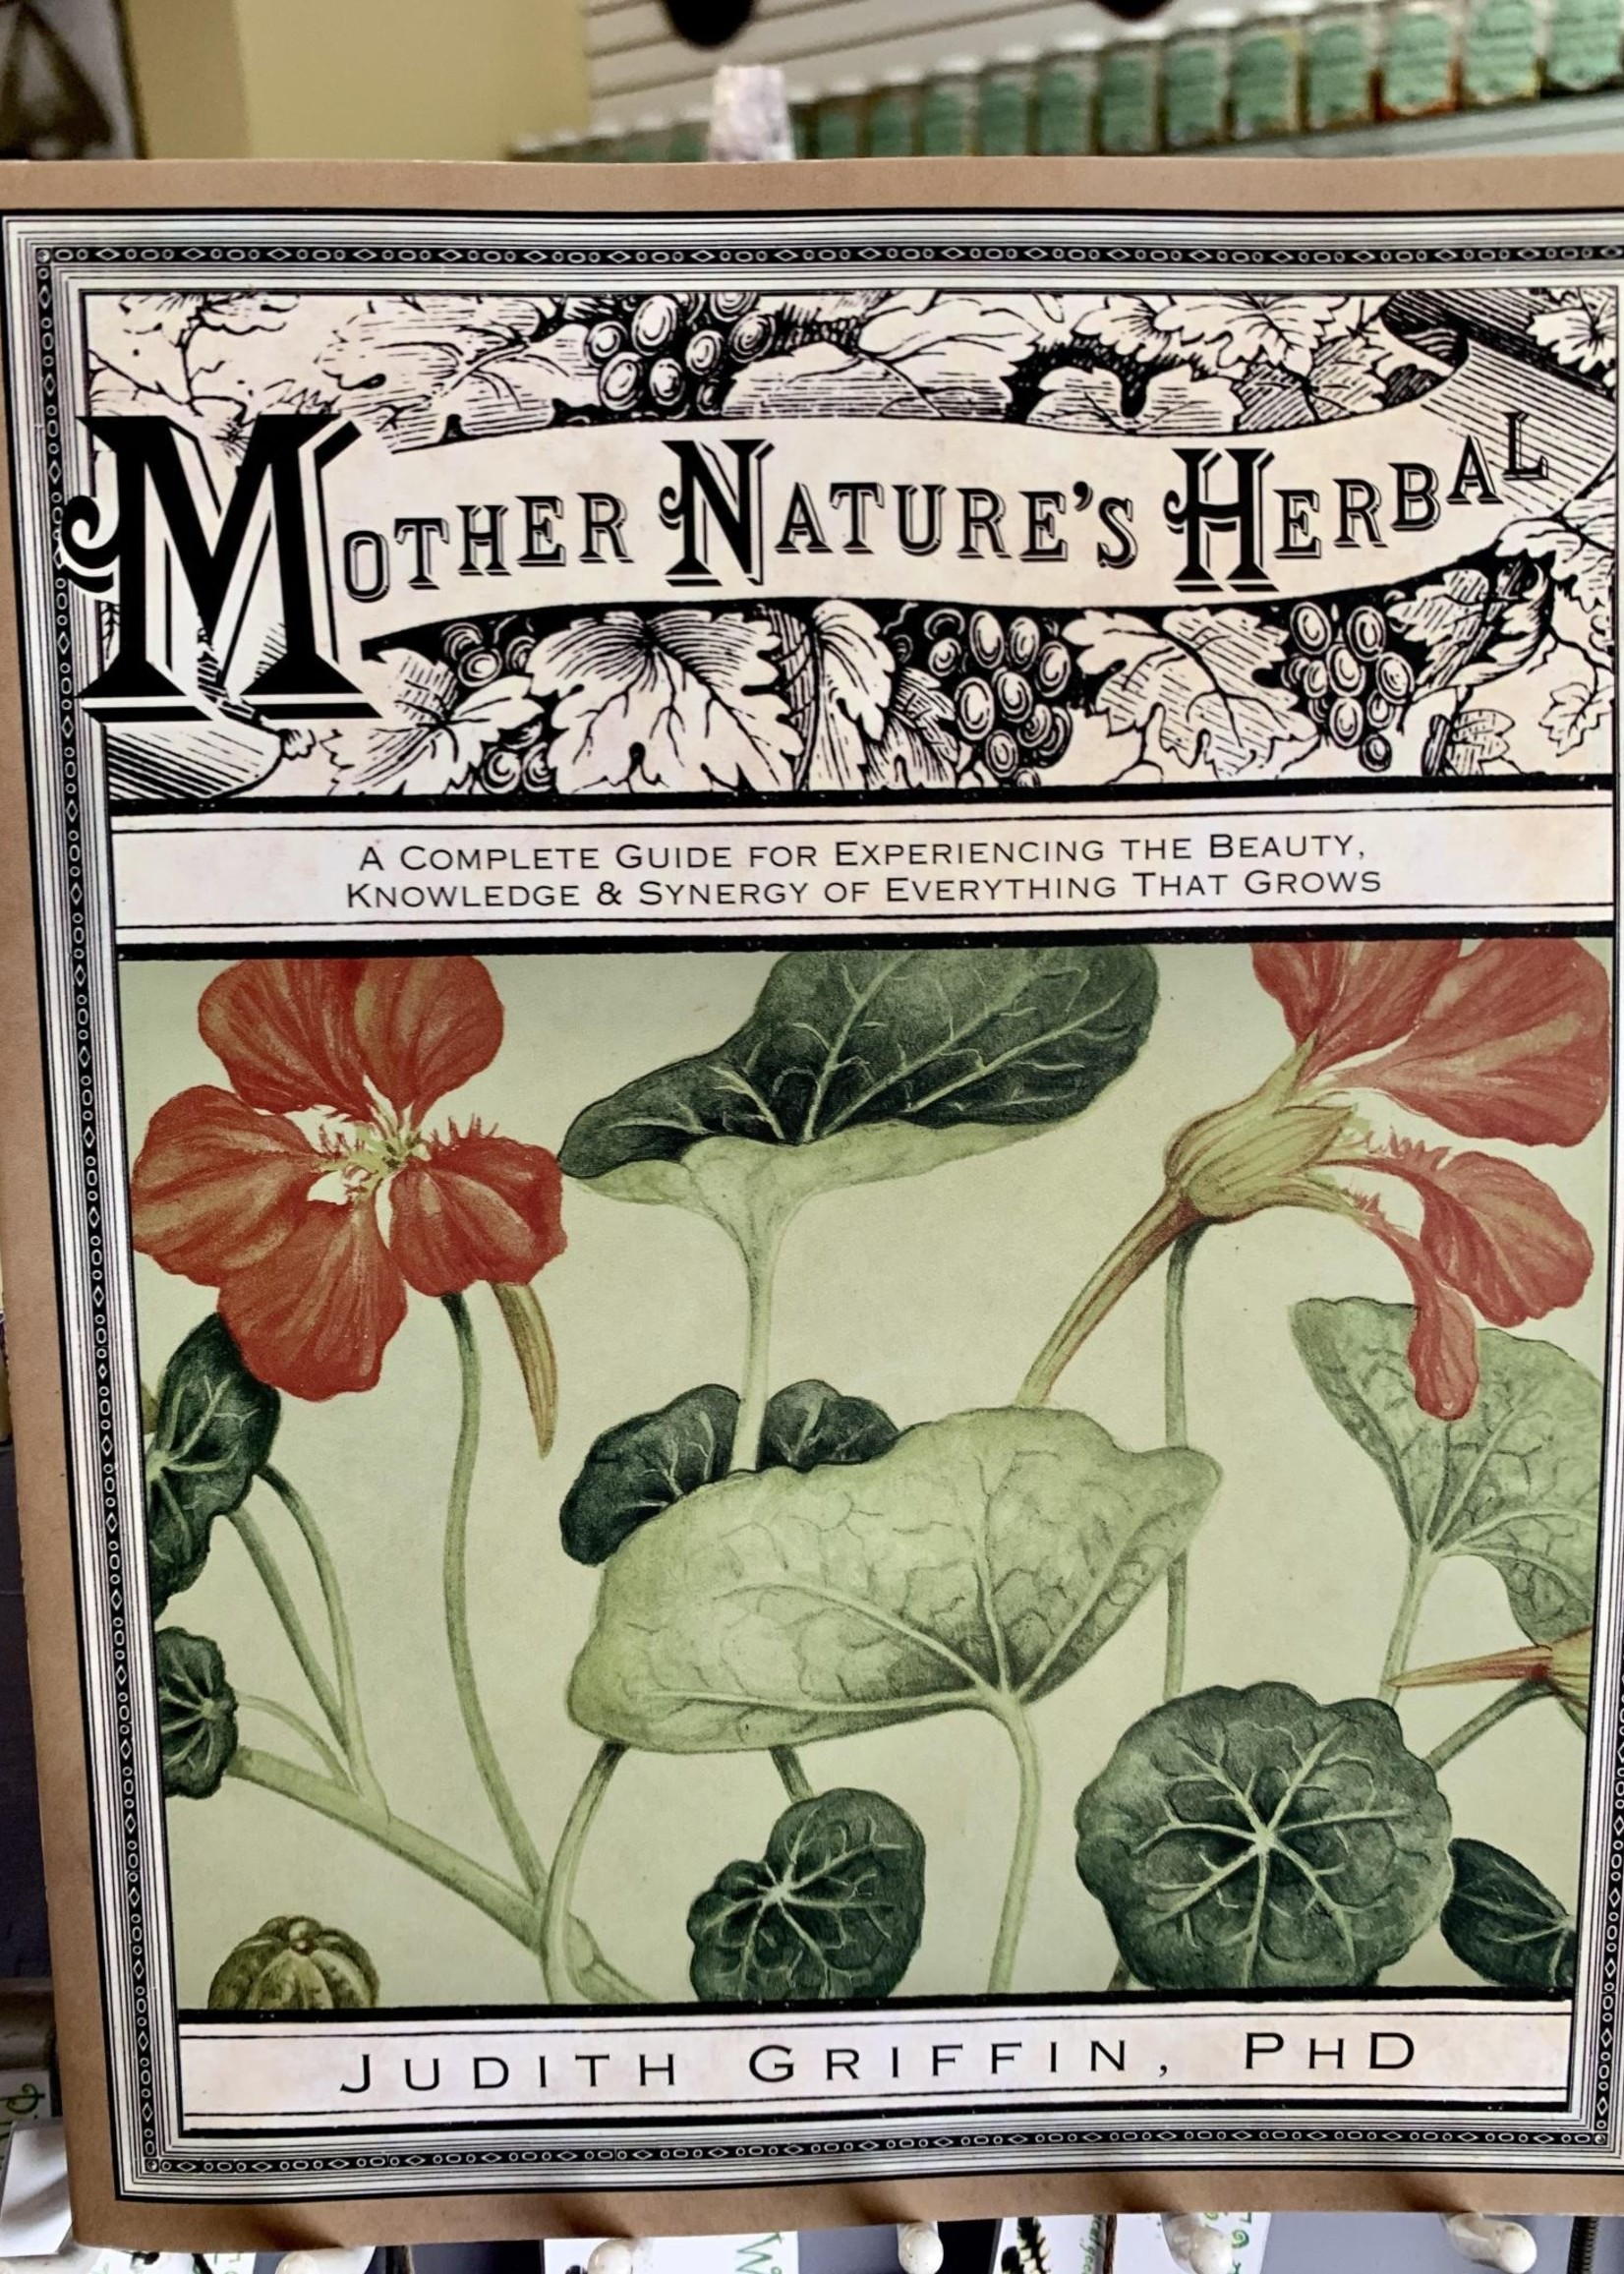 Mother Nature's Herbal by Judith Griffin, PhD